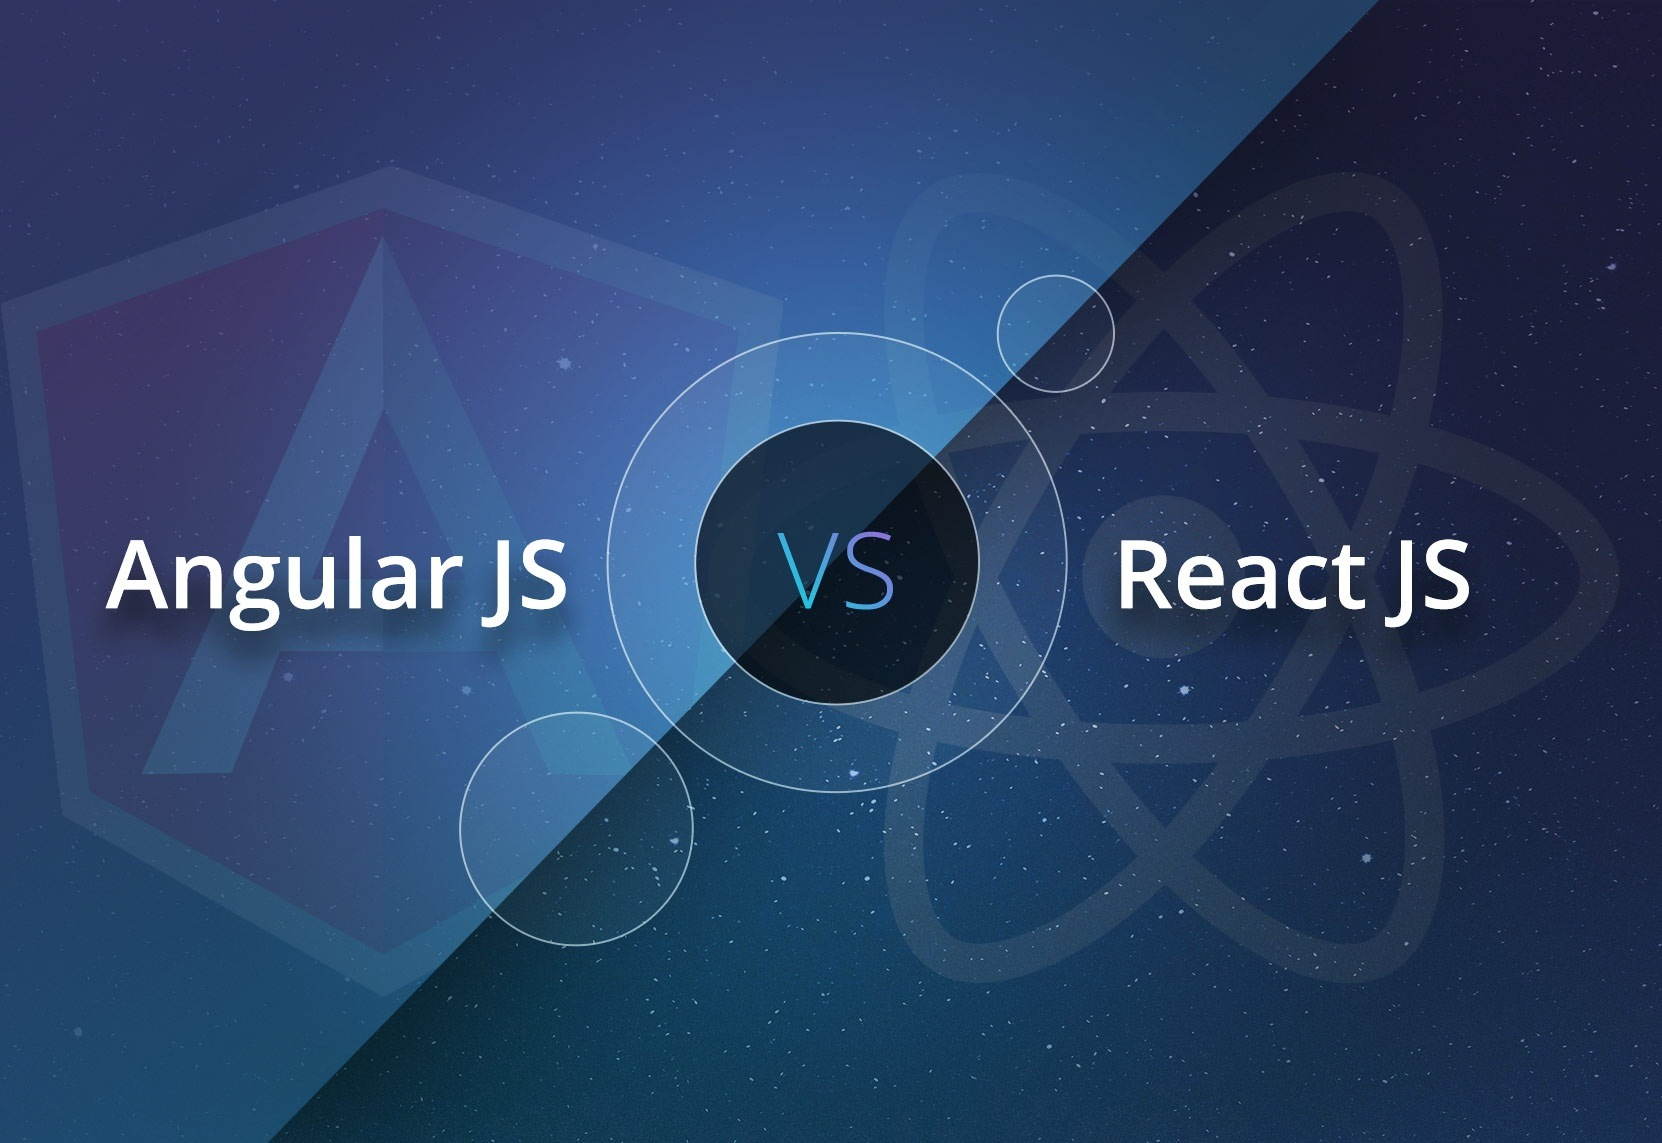 Should I learn React or AngularJS? - Quora